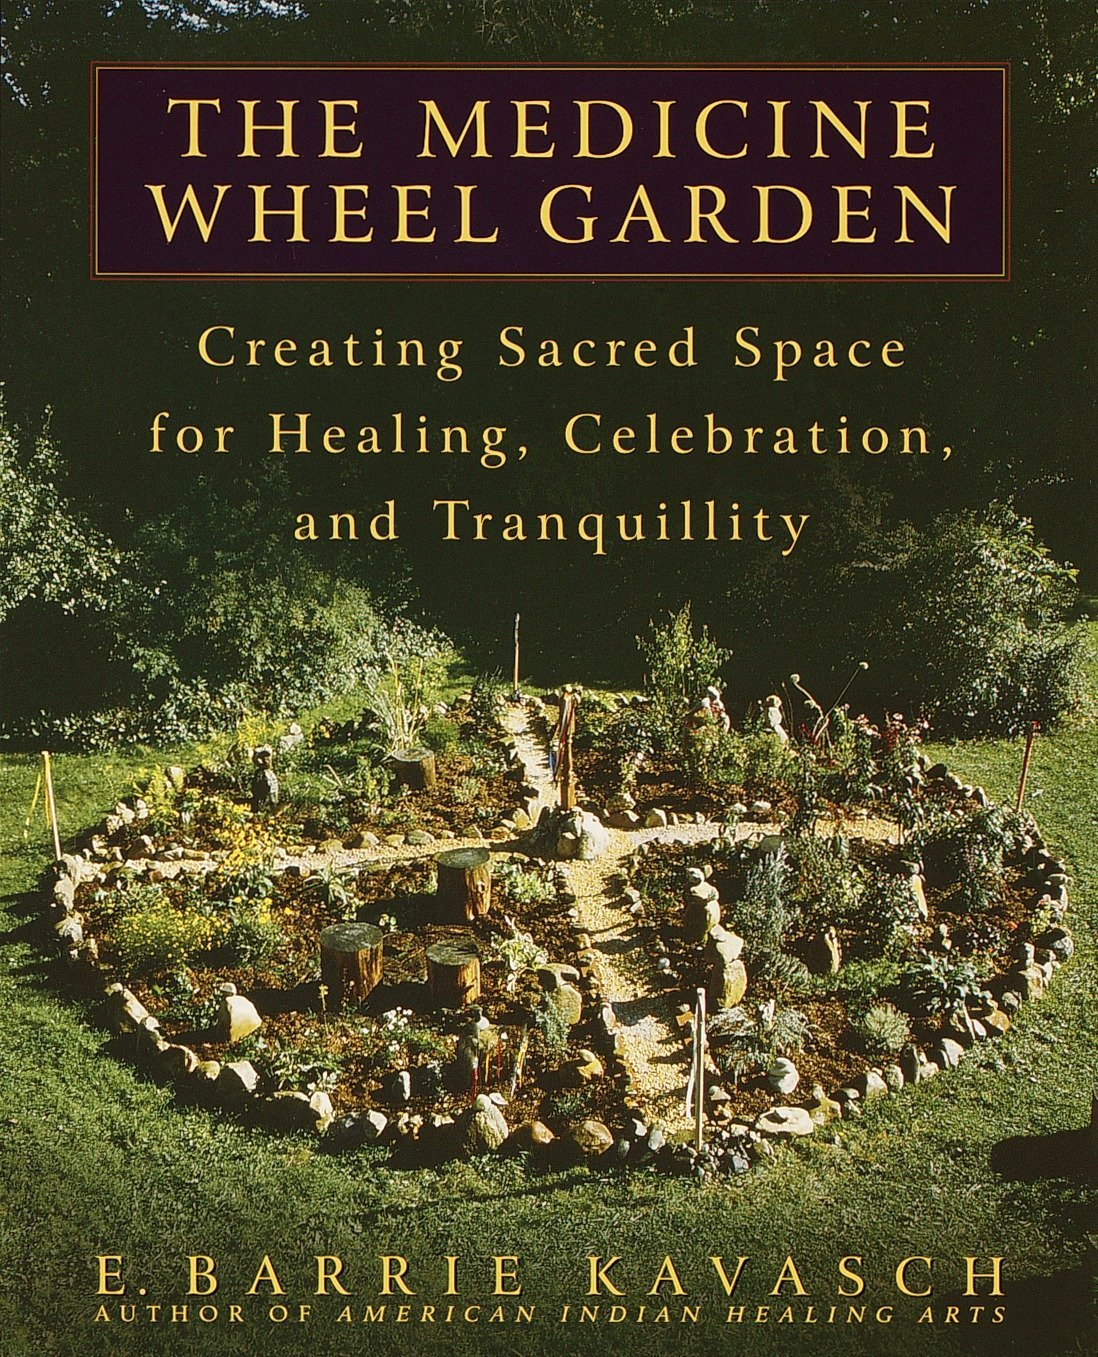 The Medicine Wheel Garden: Creating Sacred Space for Healing ...